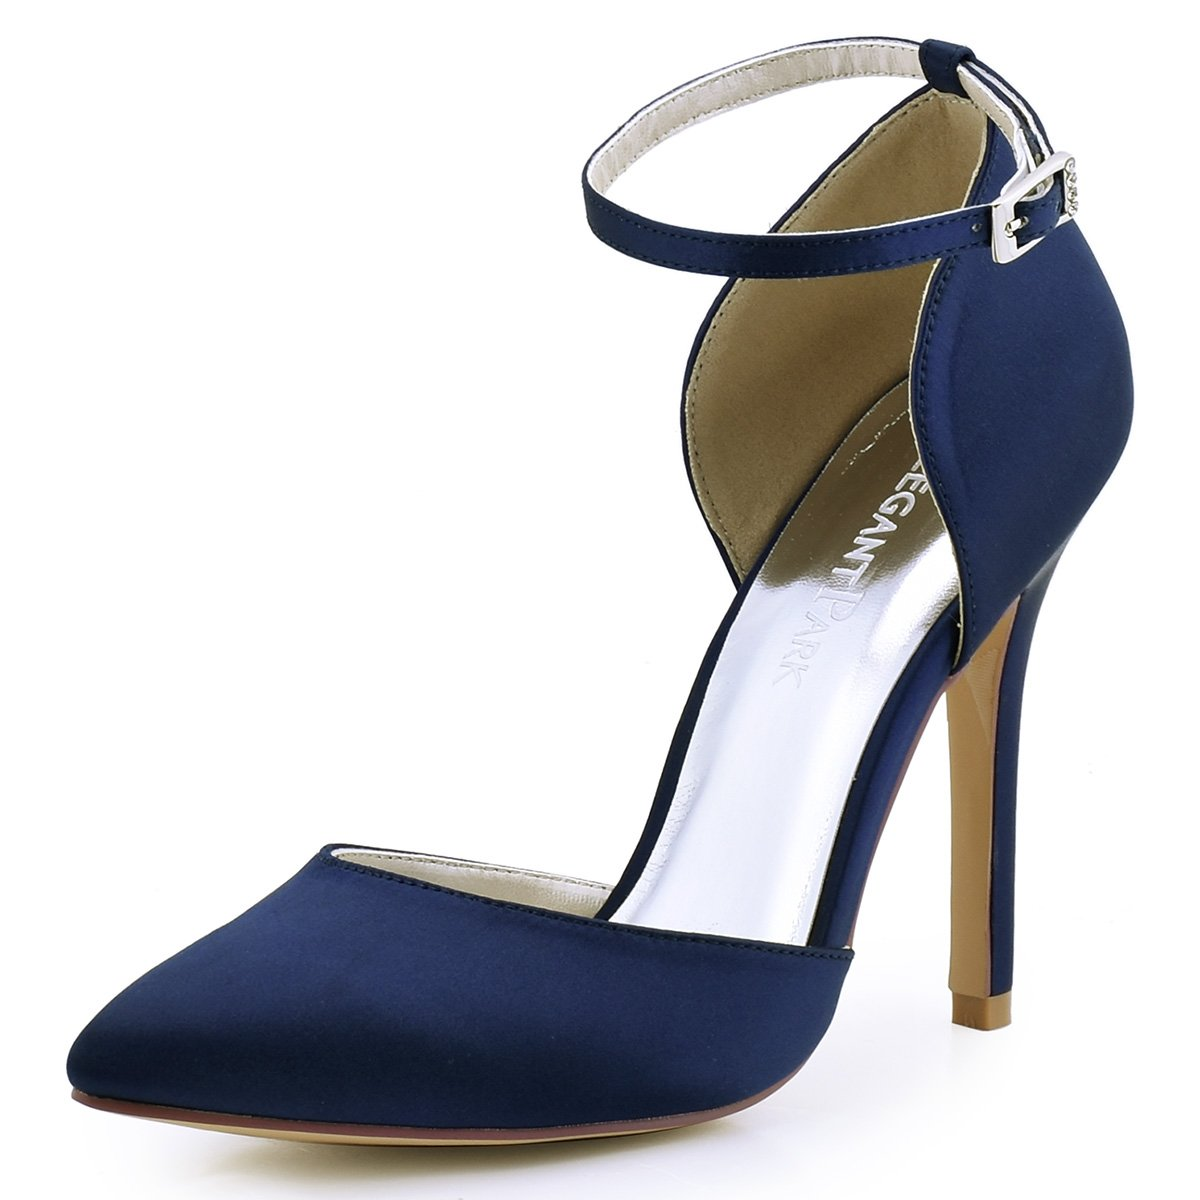 ElegantPark HC1602 Women's Pointed Toe High Heel Ankle Strap D'Orsay Satin Dress Pumps Navy Blue US 9